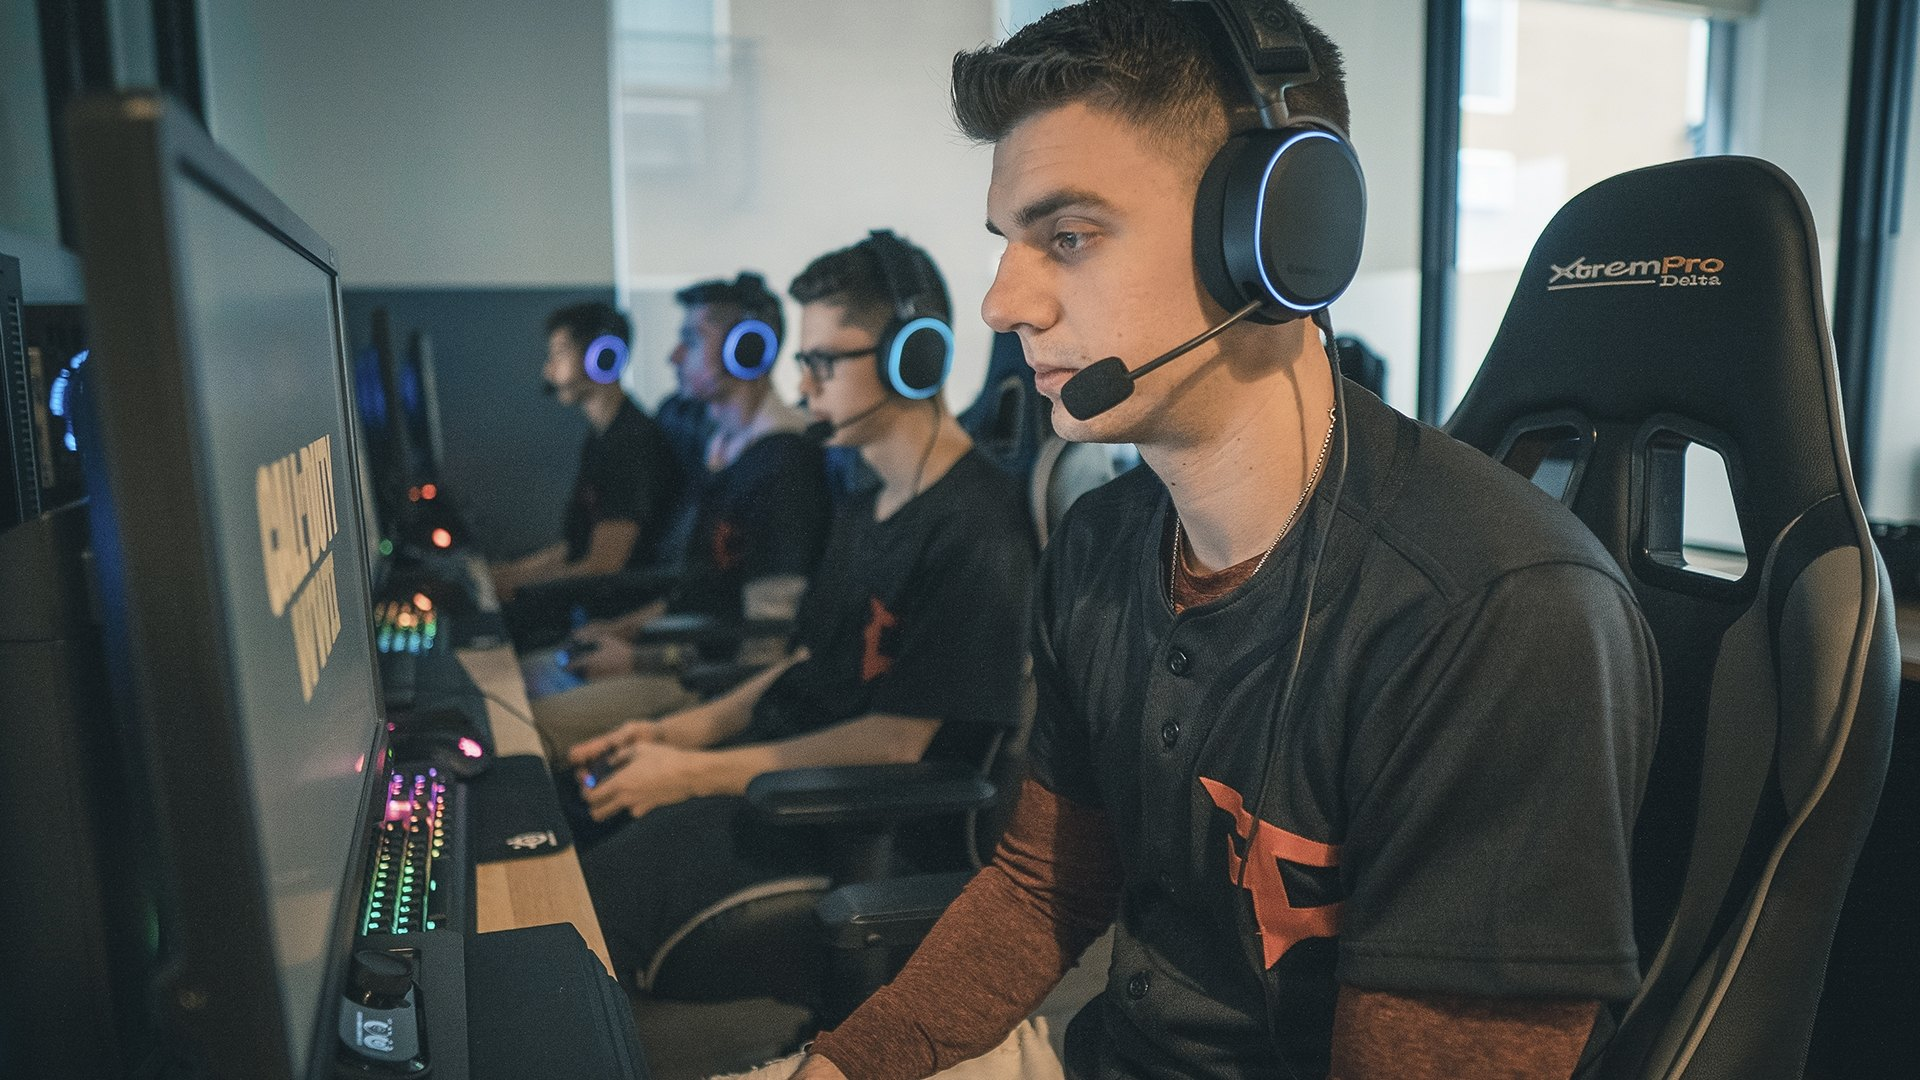 FaZe esports team lined up wearing Arctis headsets